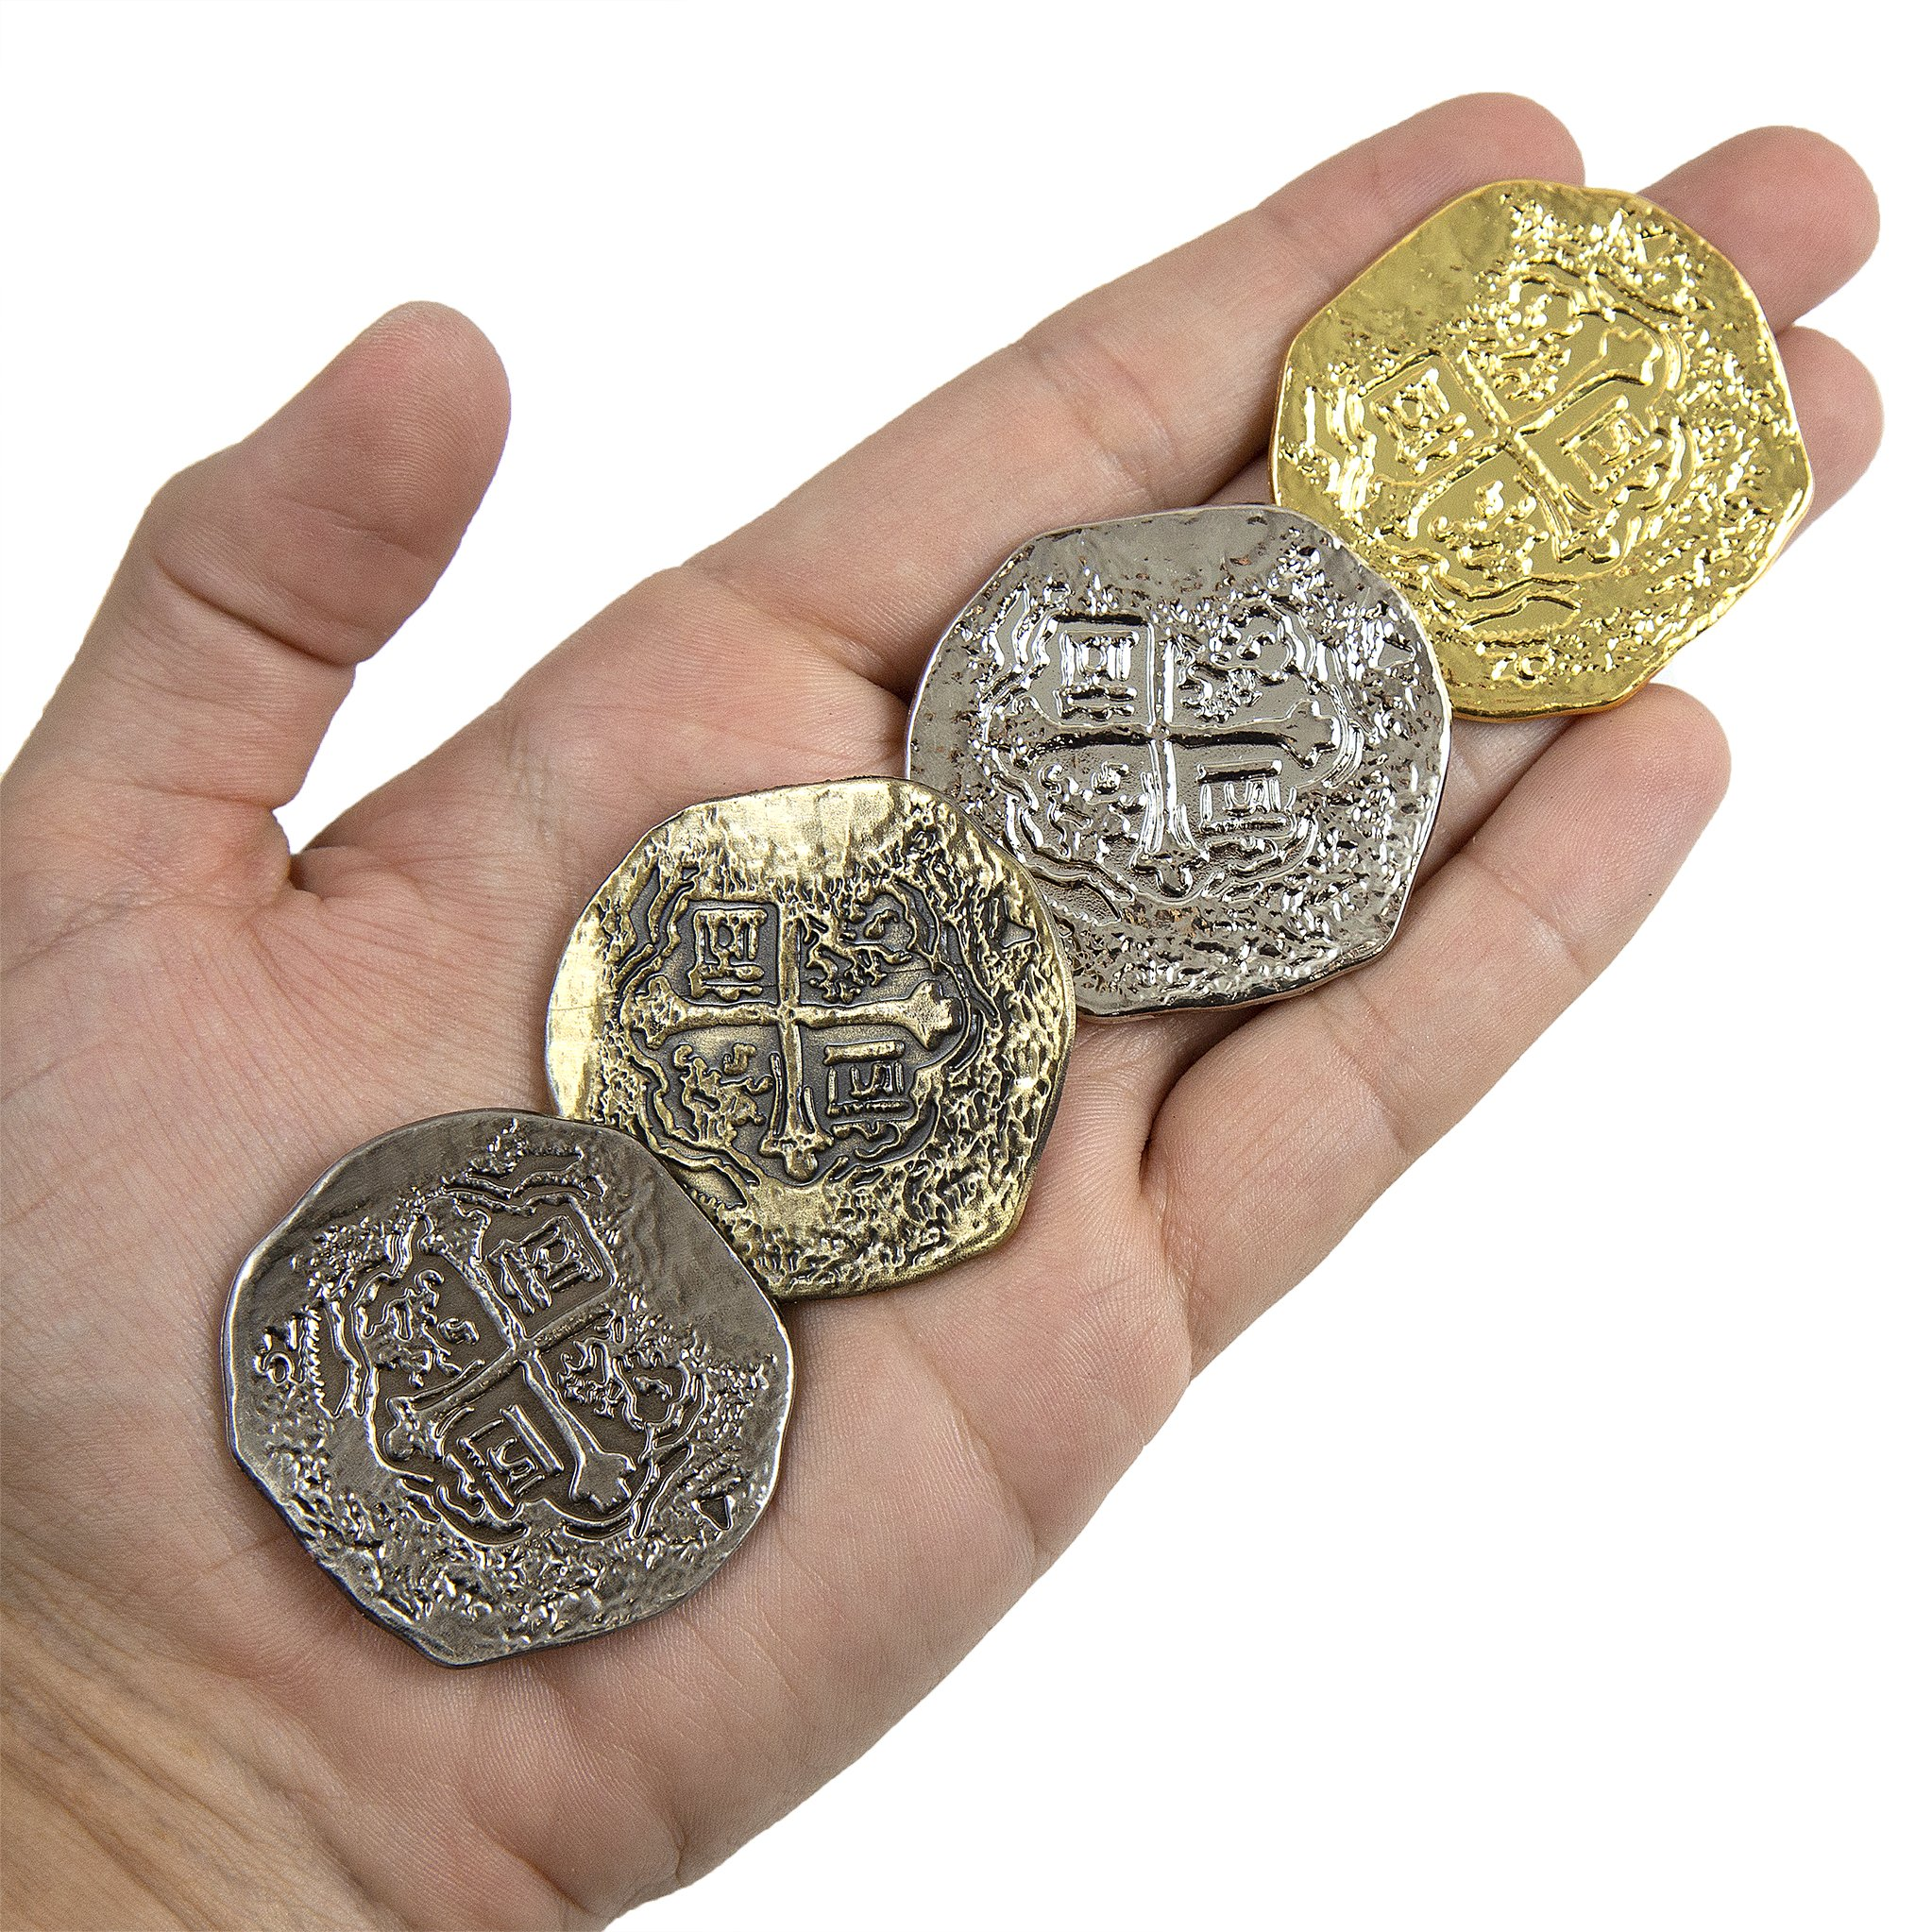 Extra Large Metal Pirate Treasure Coins - 100 Gold and Silver Doubloon Replicas - Toy Pirate Coins by Beverly Oaks (Image #2)